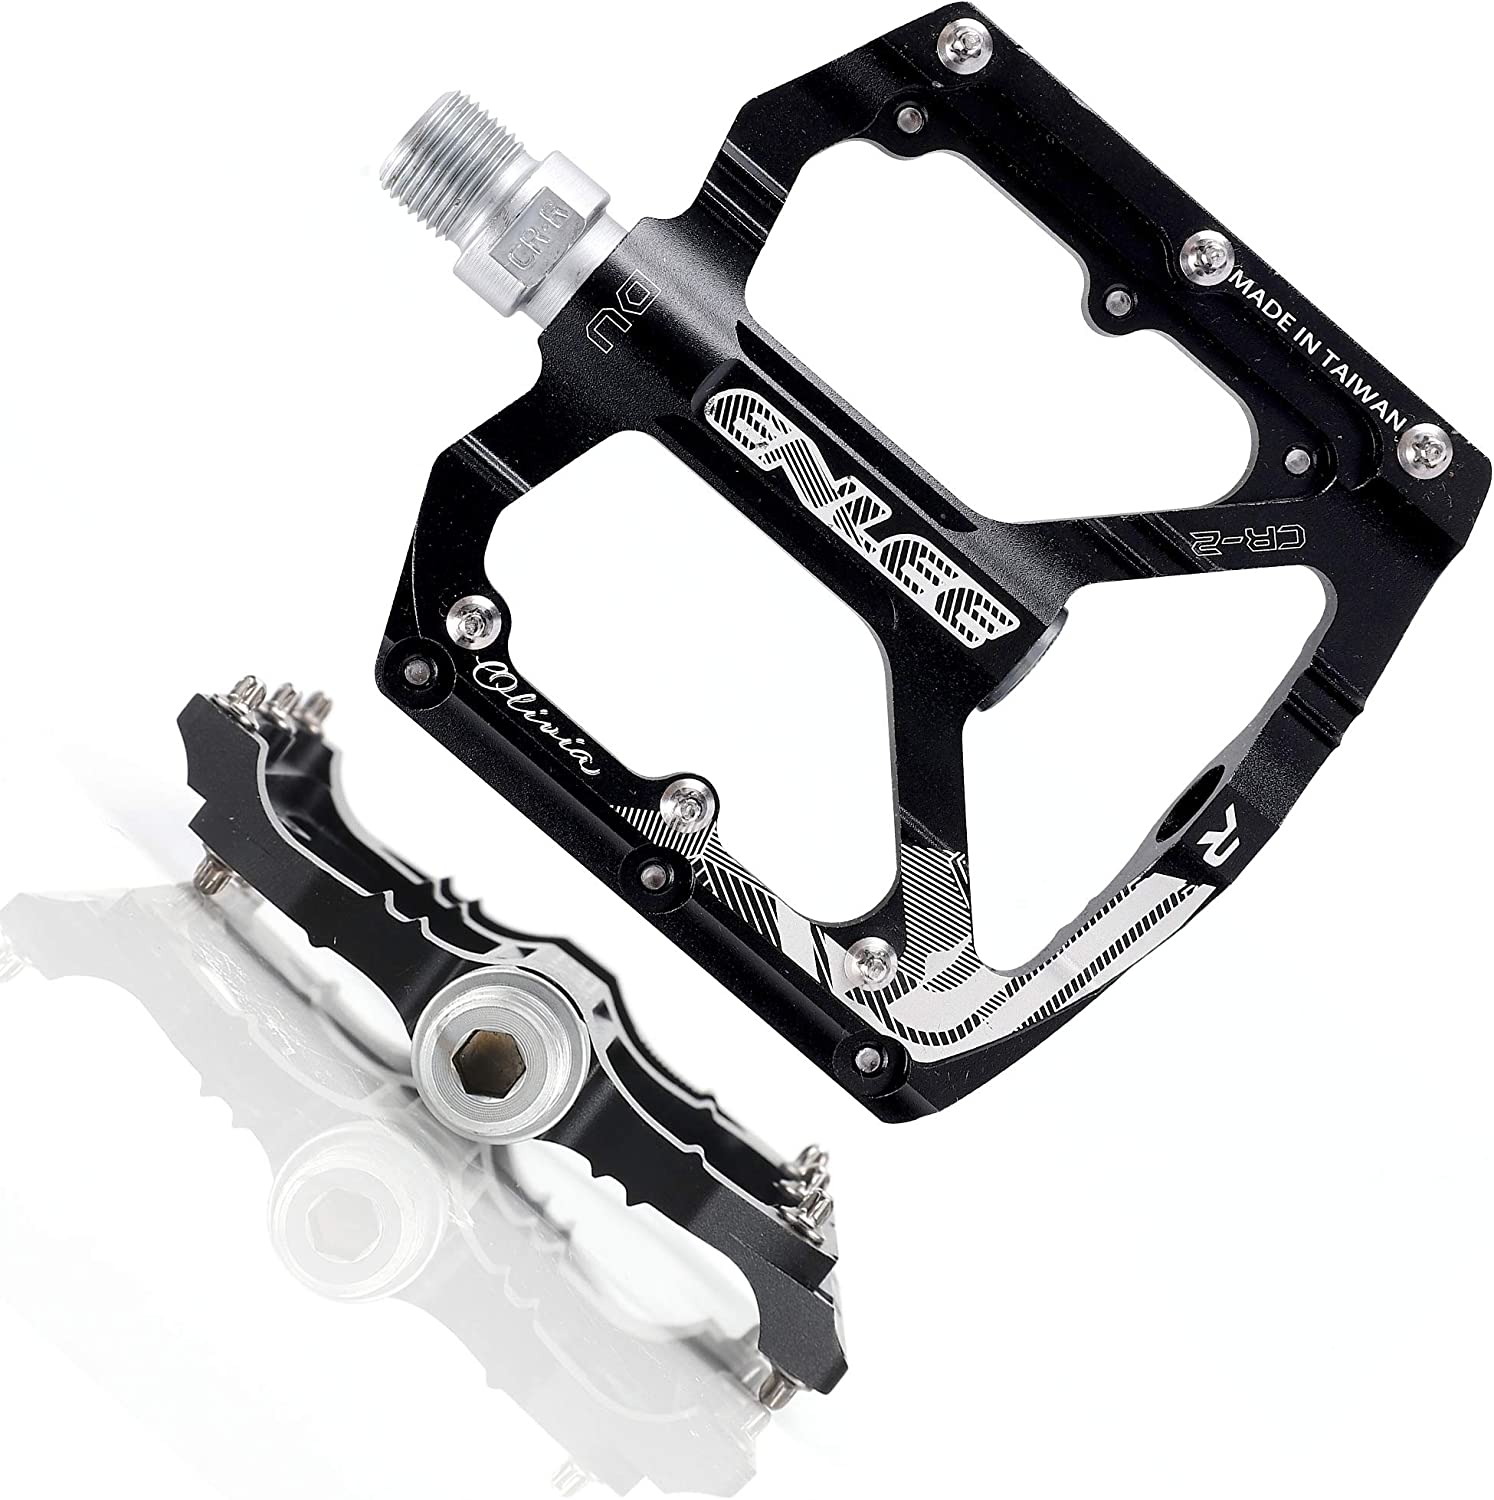 Specialized Alloy Fitness bicycle bike Pedals 9//16